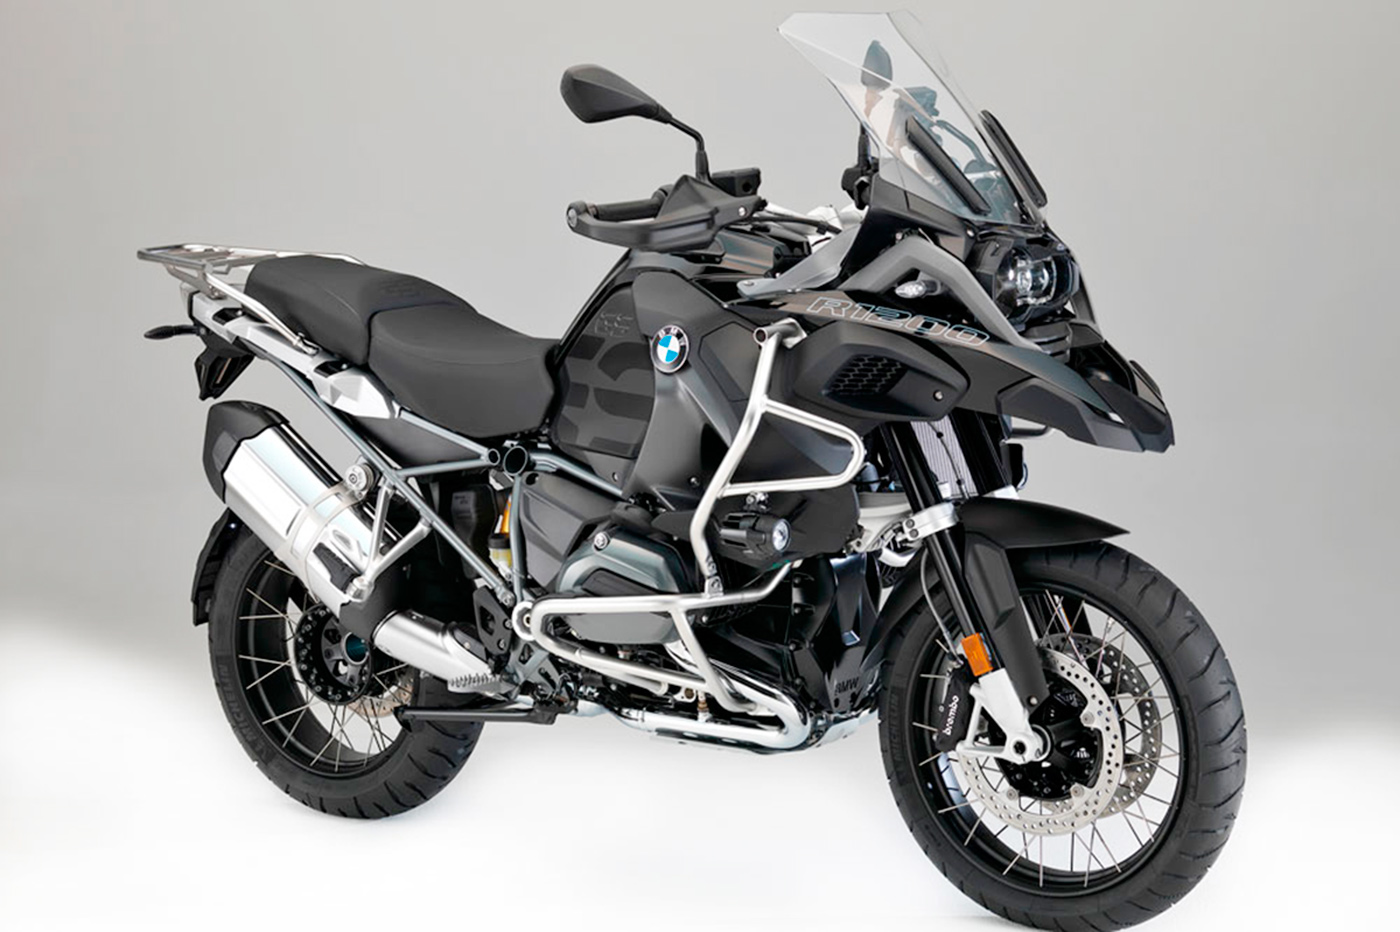 bmw r1200 gs adventure manual taller - despiece en pdf